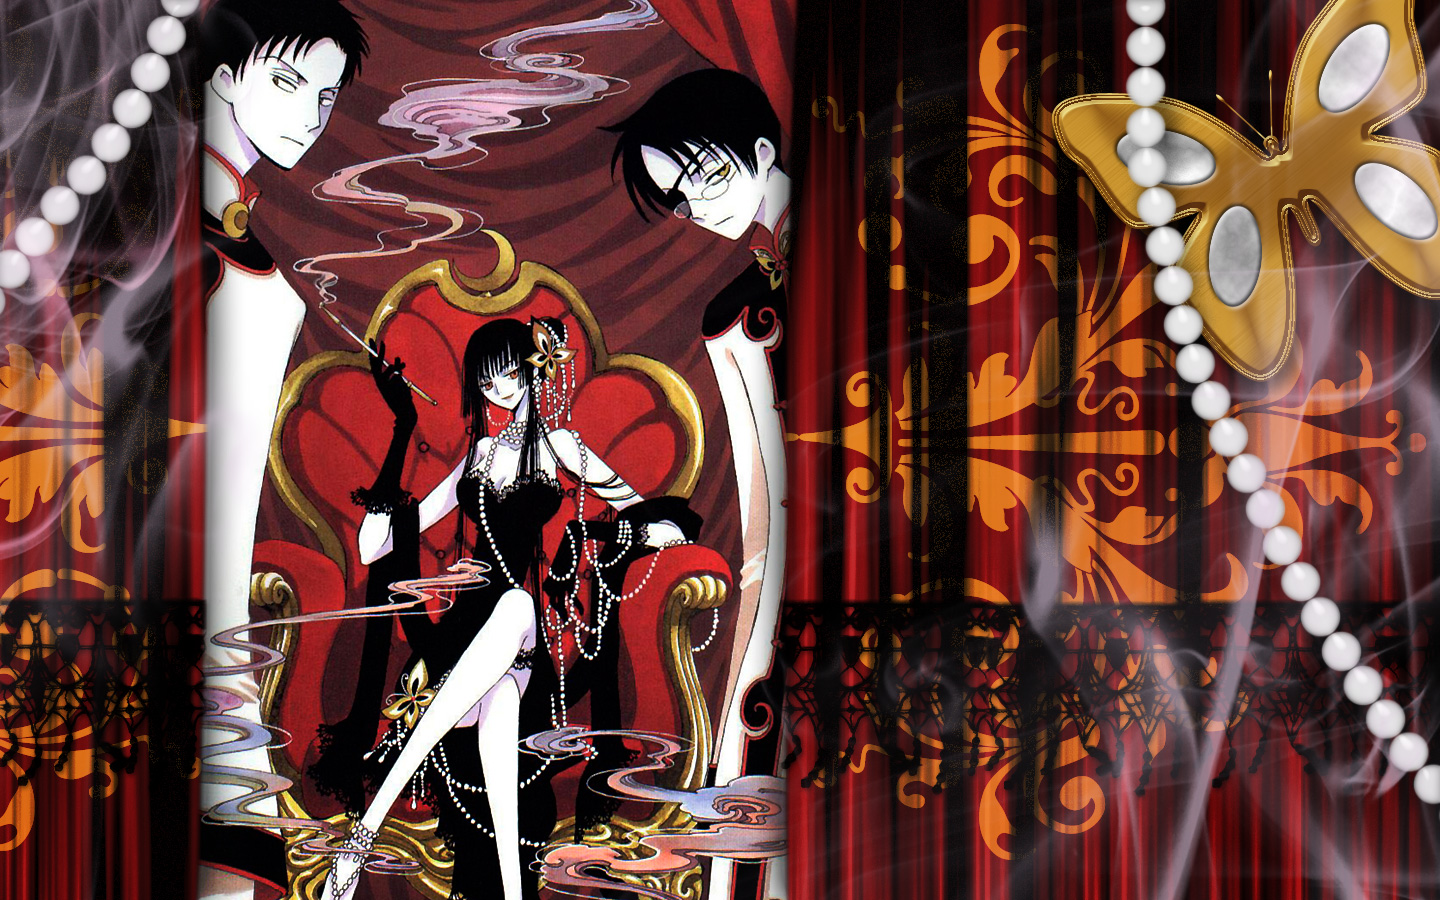 Download image Xxxholic PC, Android, iPhone and iPad. Wallpapers and